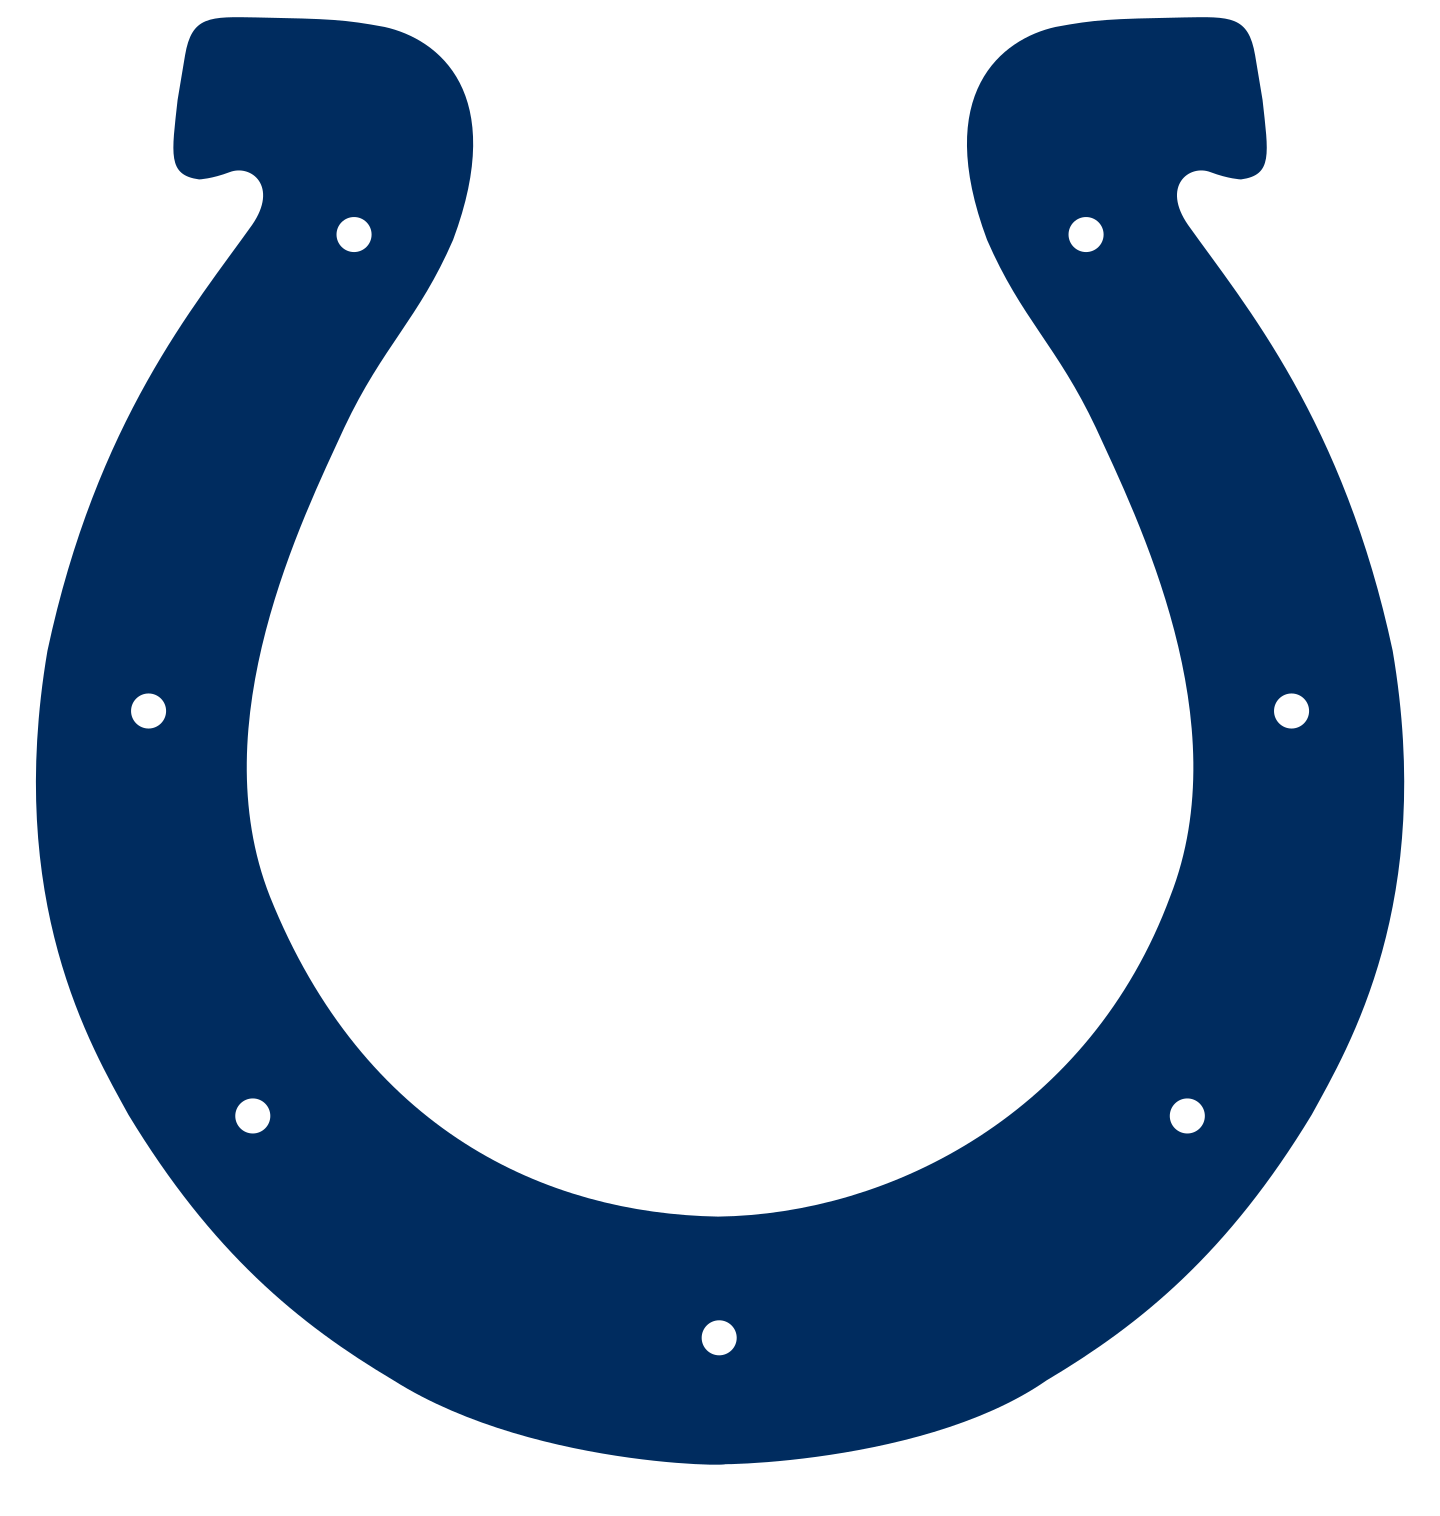 indianapolis colts logo 2 - Indianapolis Colts Logo